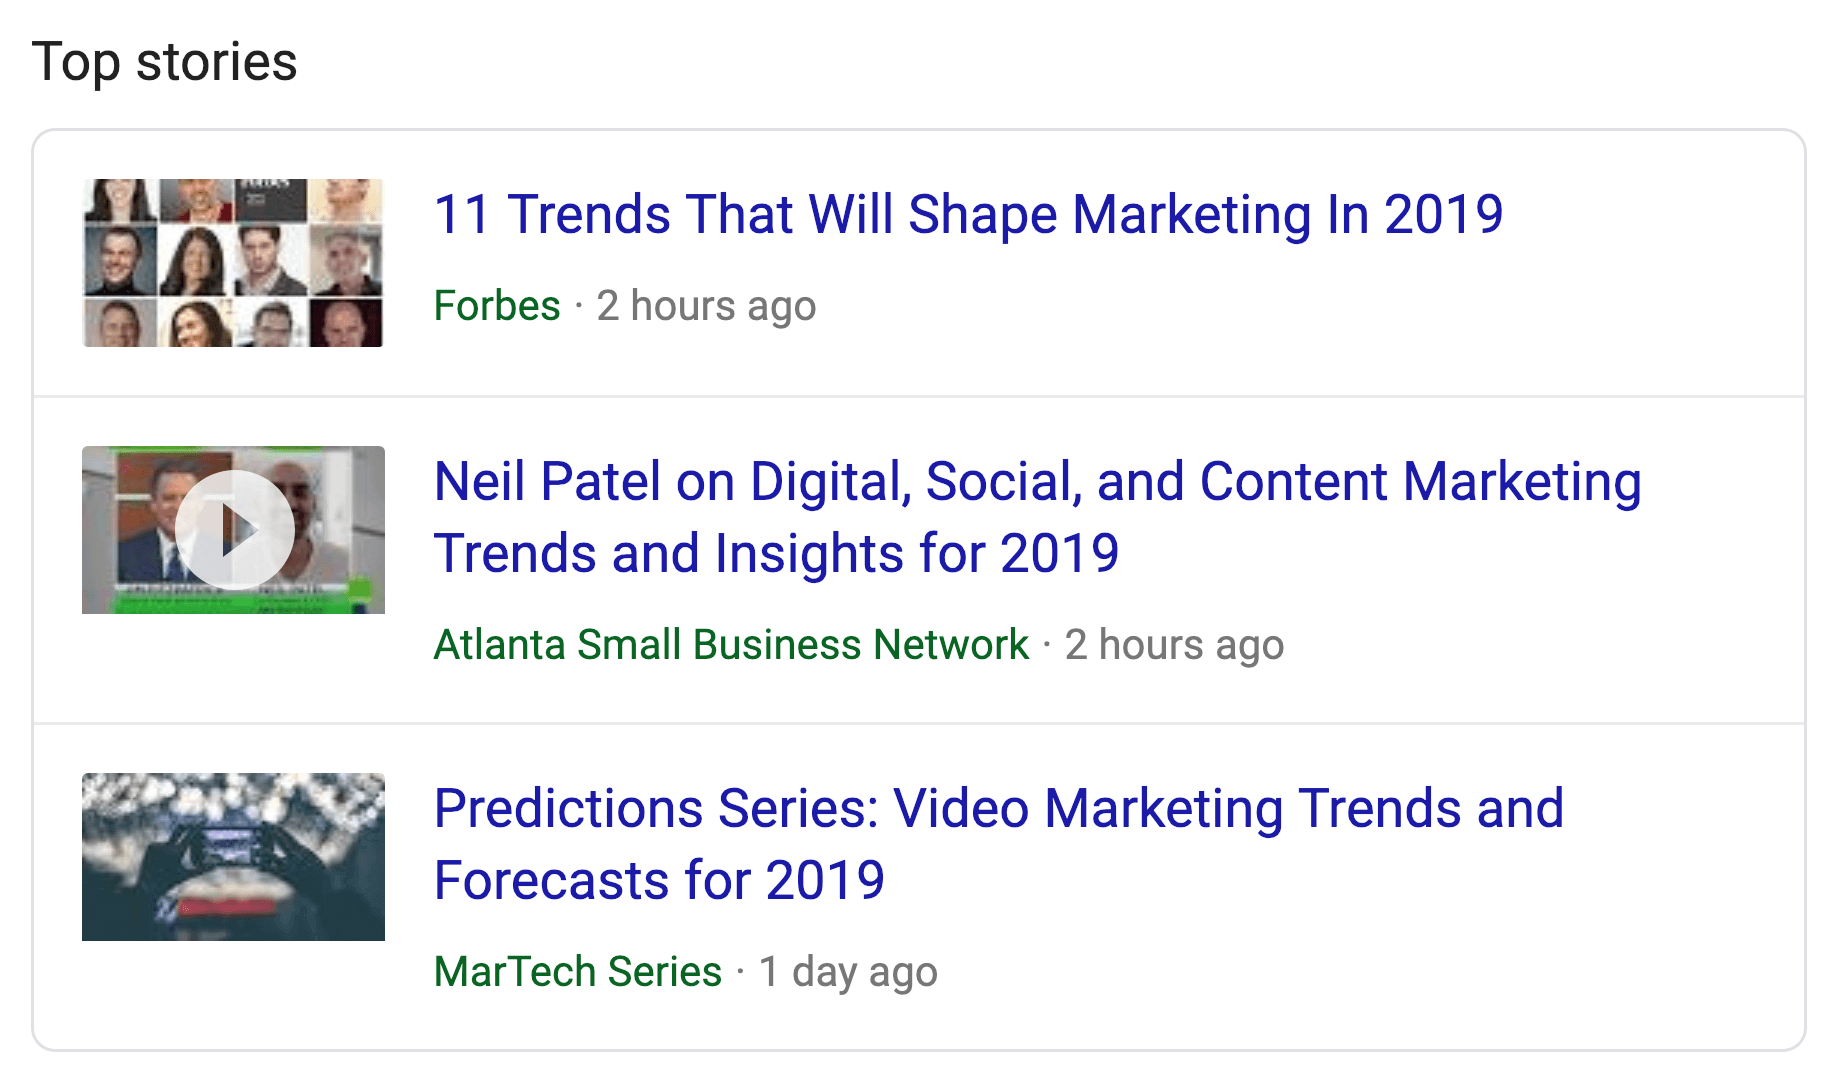 Top Stories Rich Snippet SERPs